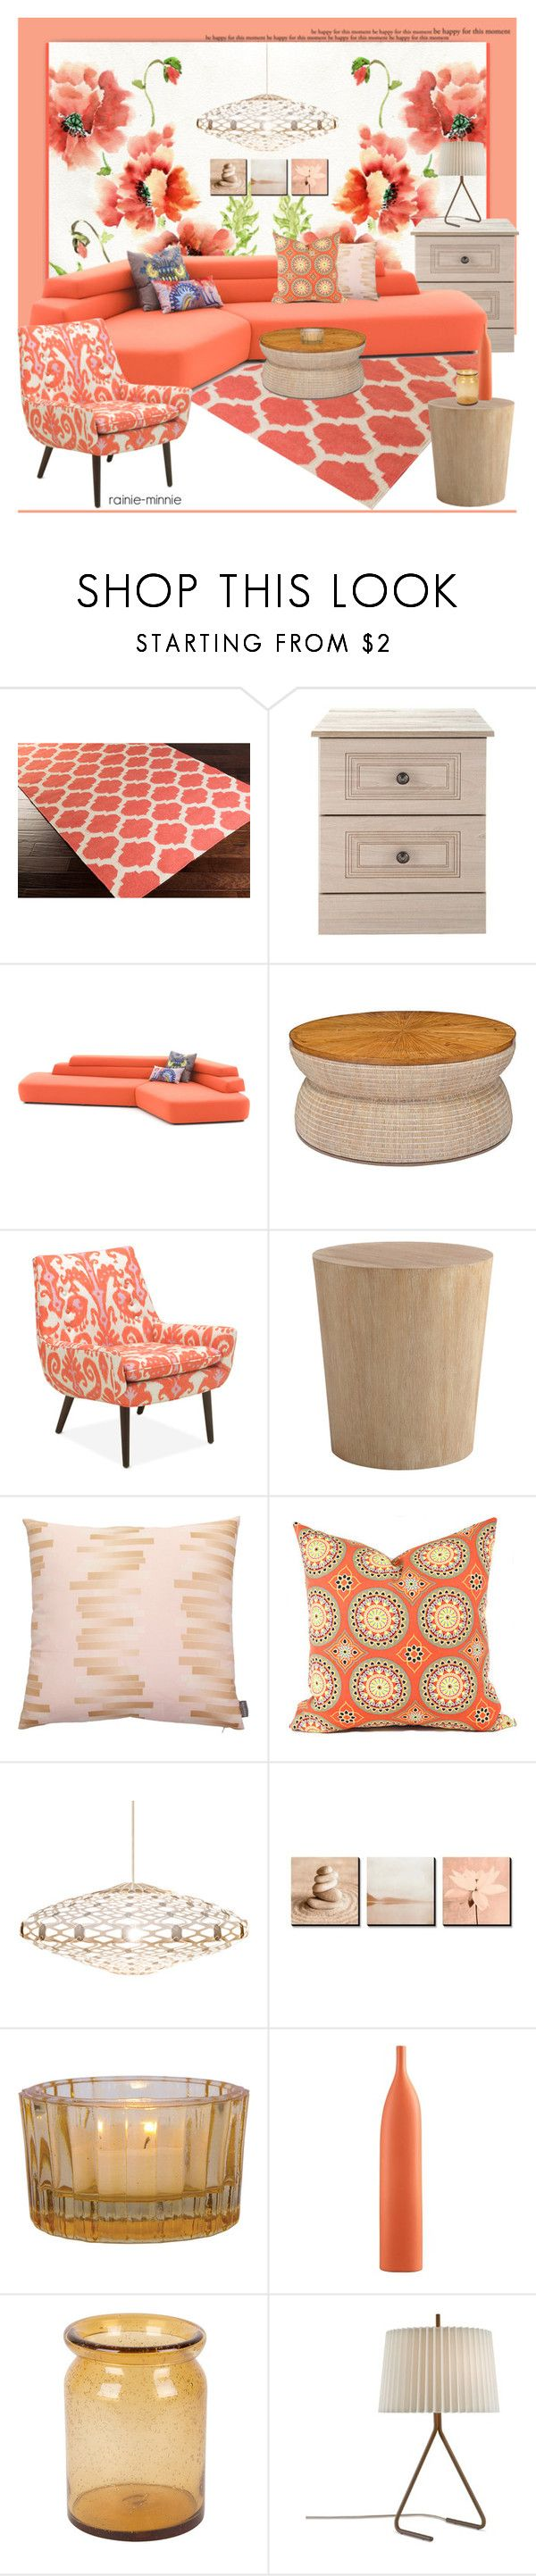 Home decor collage from january 2017 featuring currey company -  Floral Wallpaper By Rainie Minnie On Polyvore Featuring Interior Interiors Interior Design Home Home Decor Interior Decorating Surya Moroso